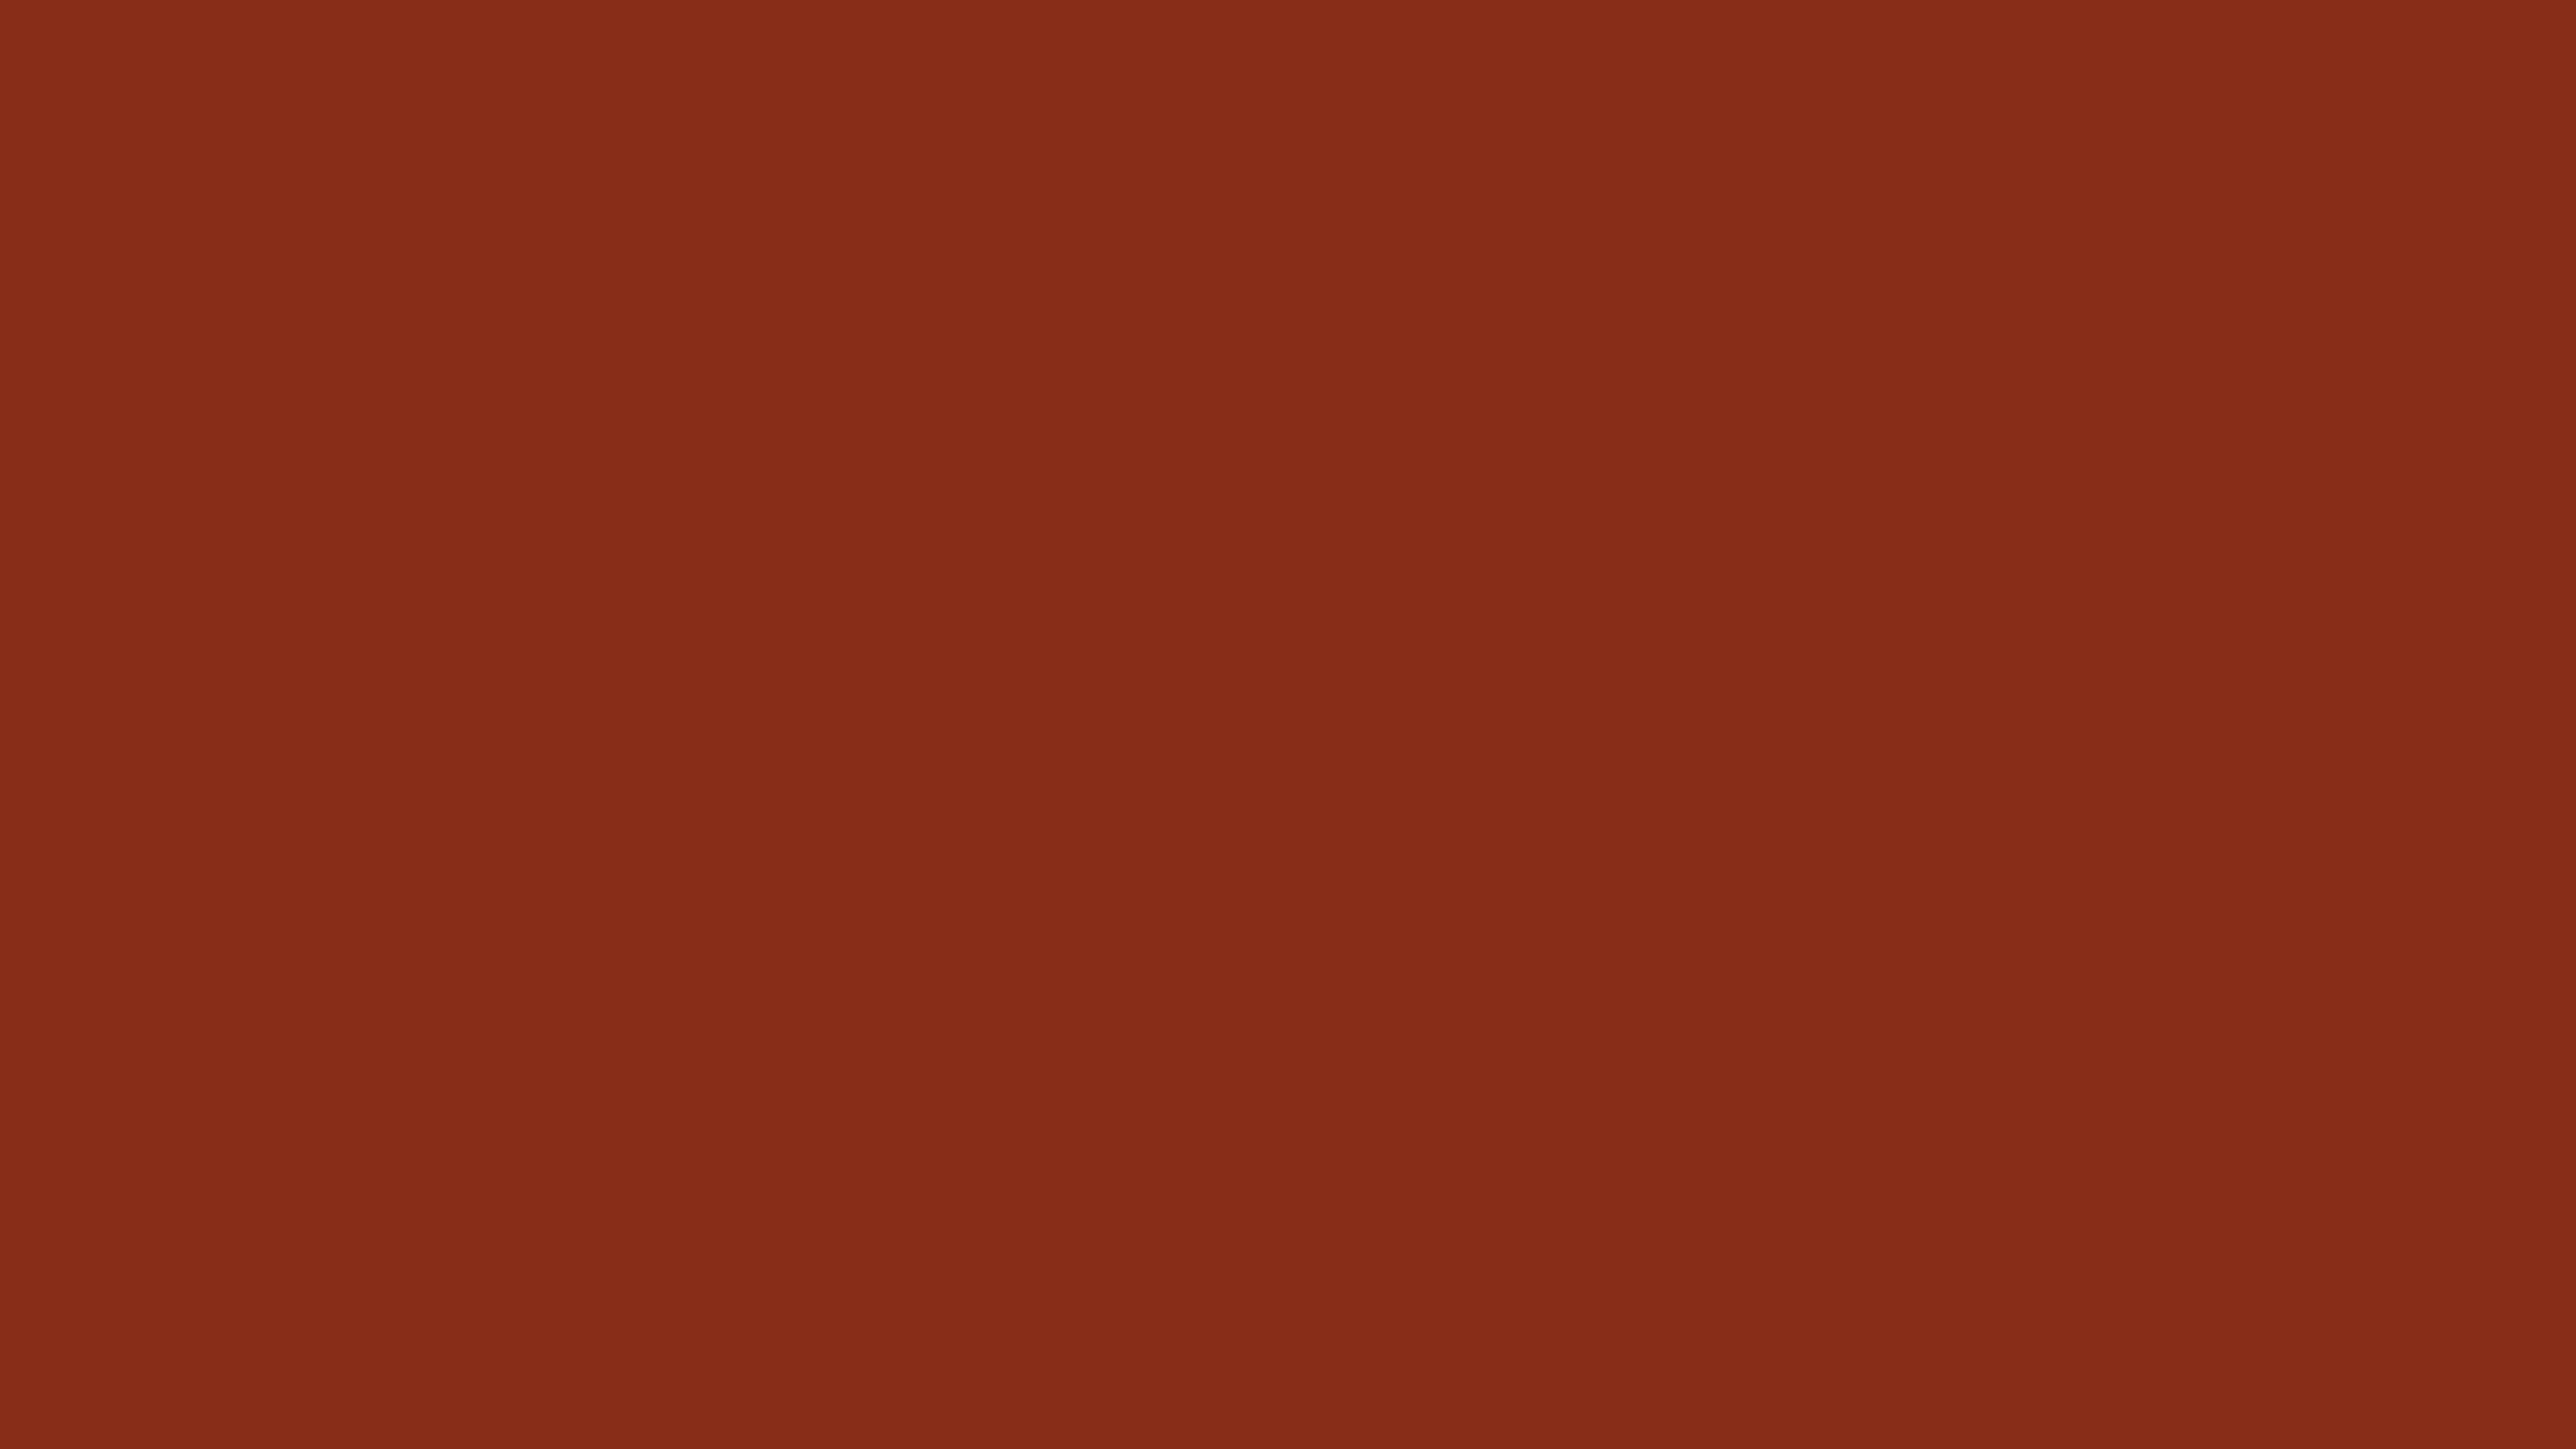 7680x4320 Sienna Solid Color Background